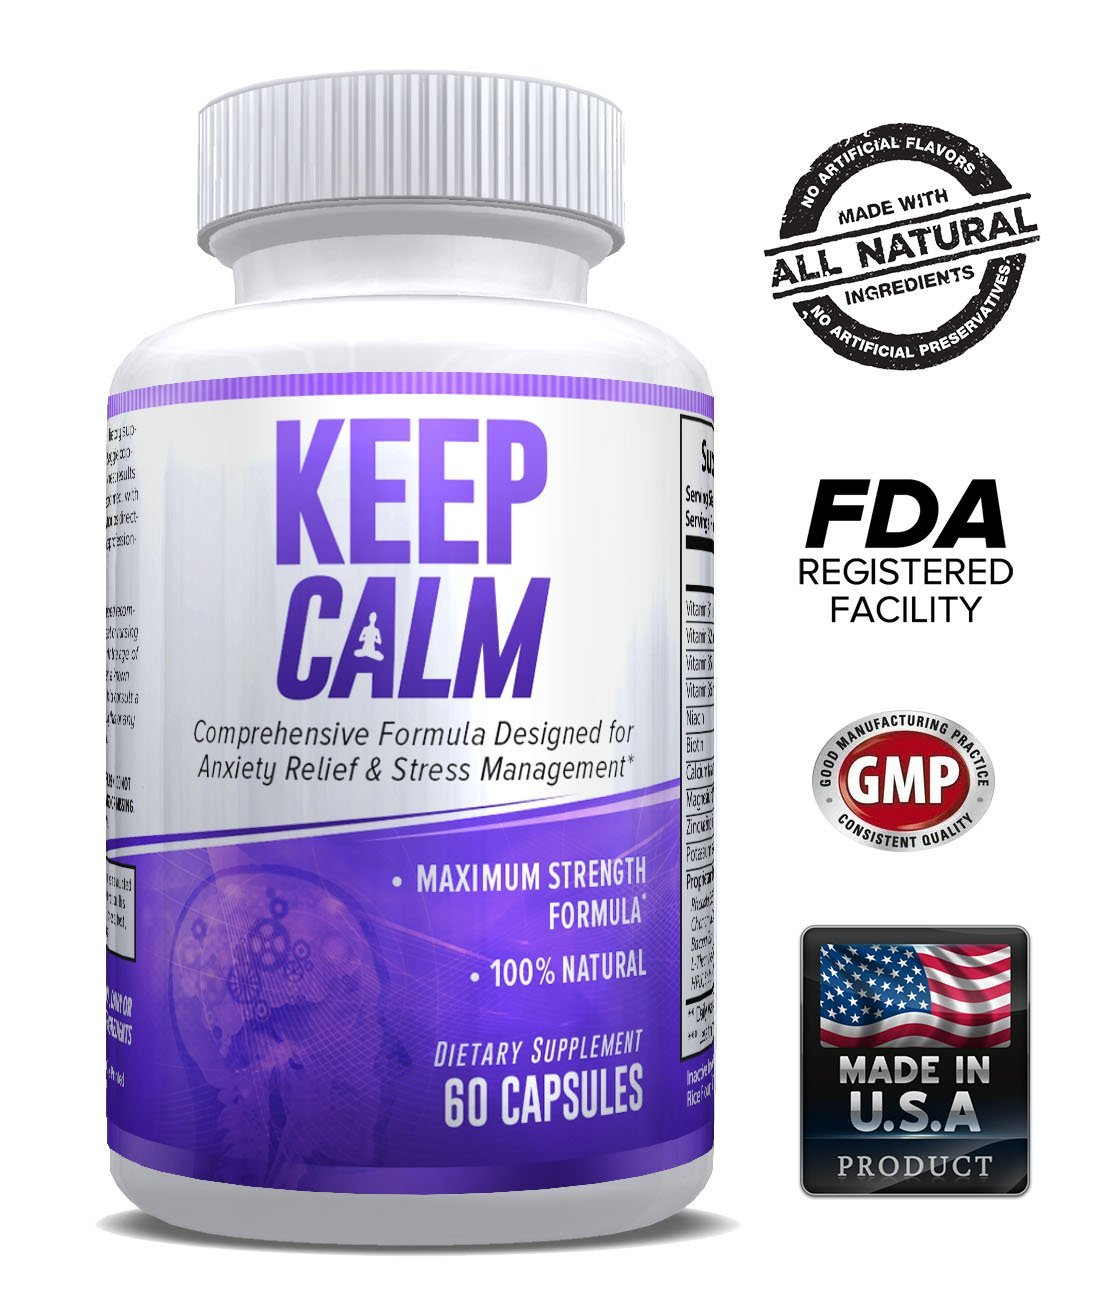 Keep Calm - Anxiety Relief Supplement - Comprehensive Formula for Anxiety Relief & Stress Management in Men & Women - 60 Capsules - Made in USA - Money Back Guarantee.